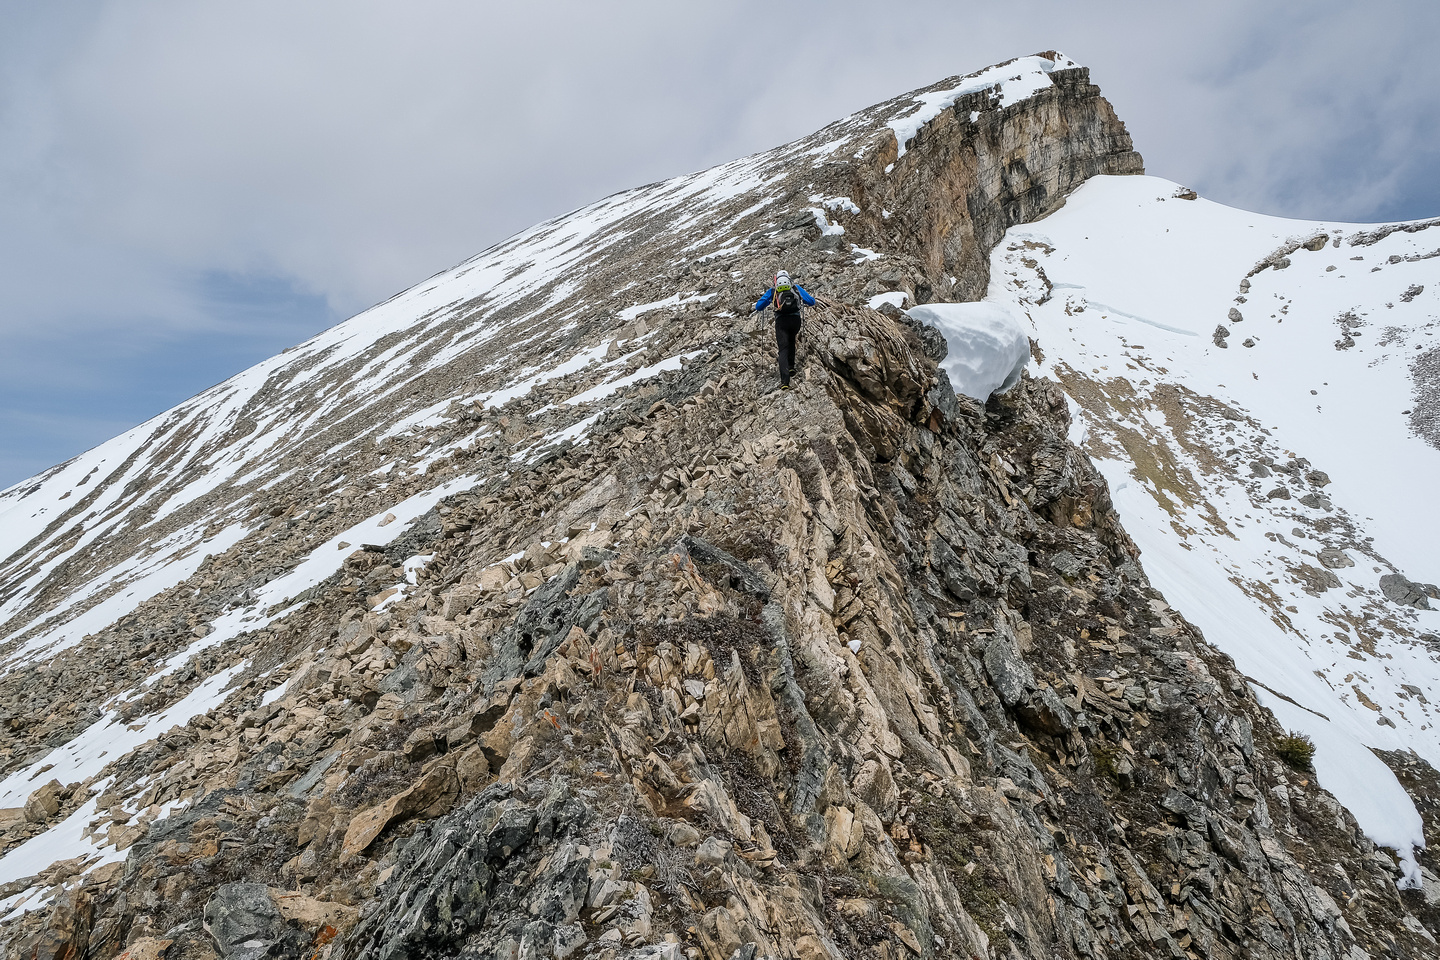 Phil ascends easy slopes to the summit of Haunted Peak.